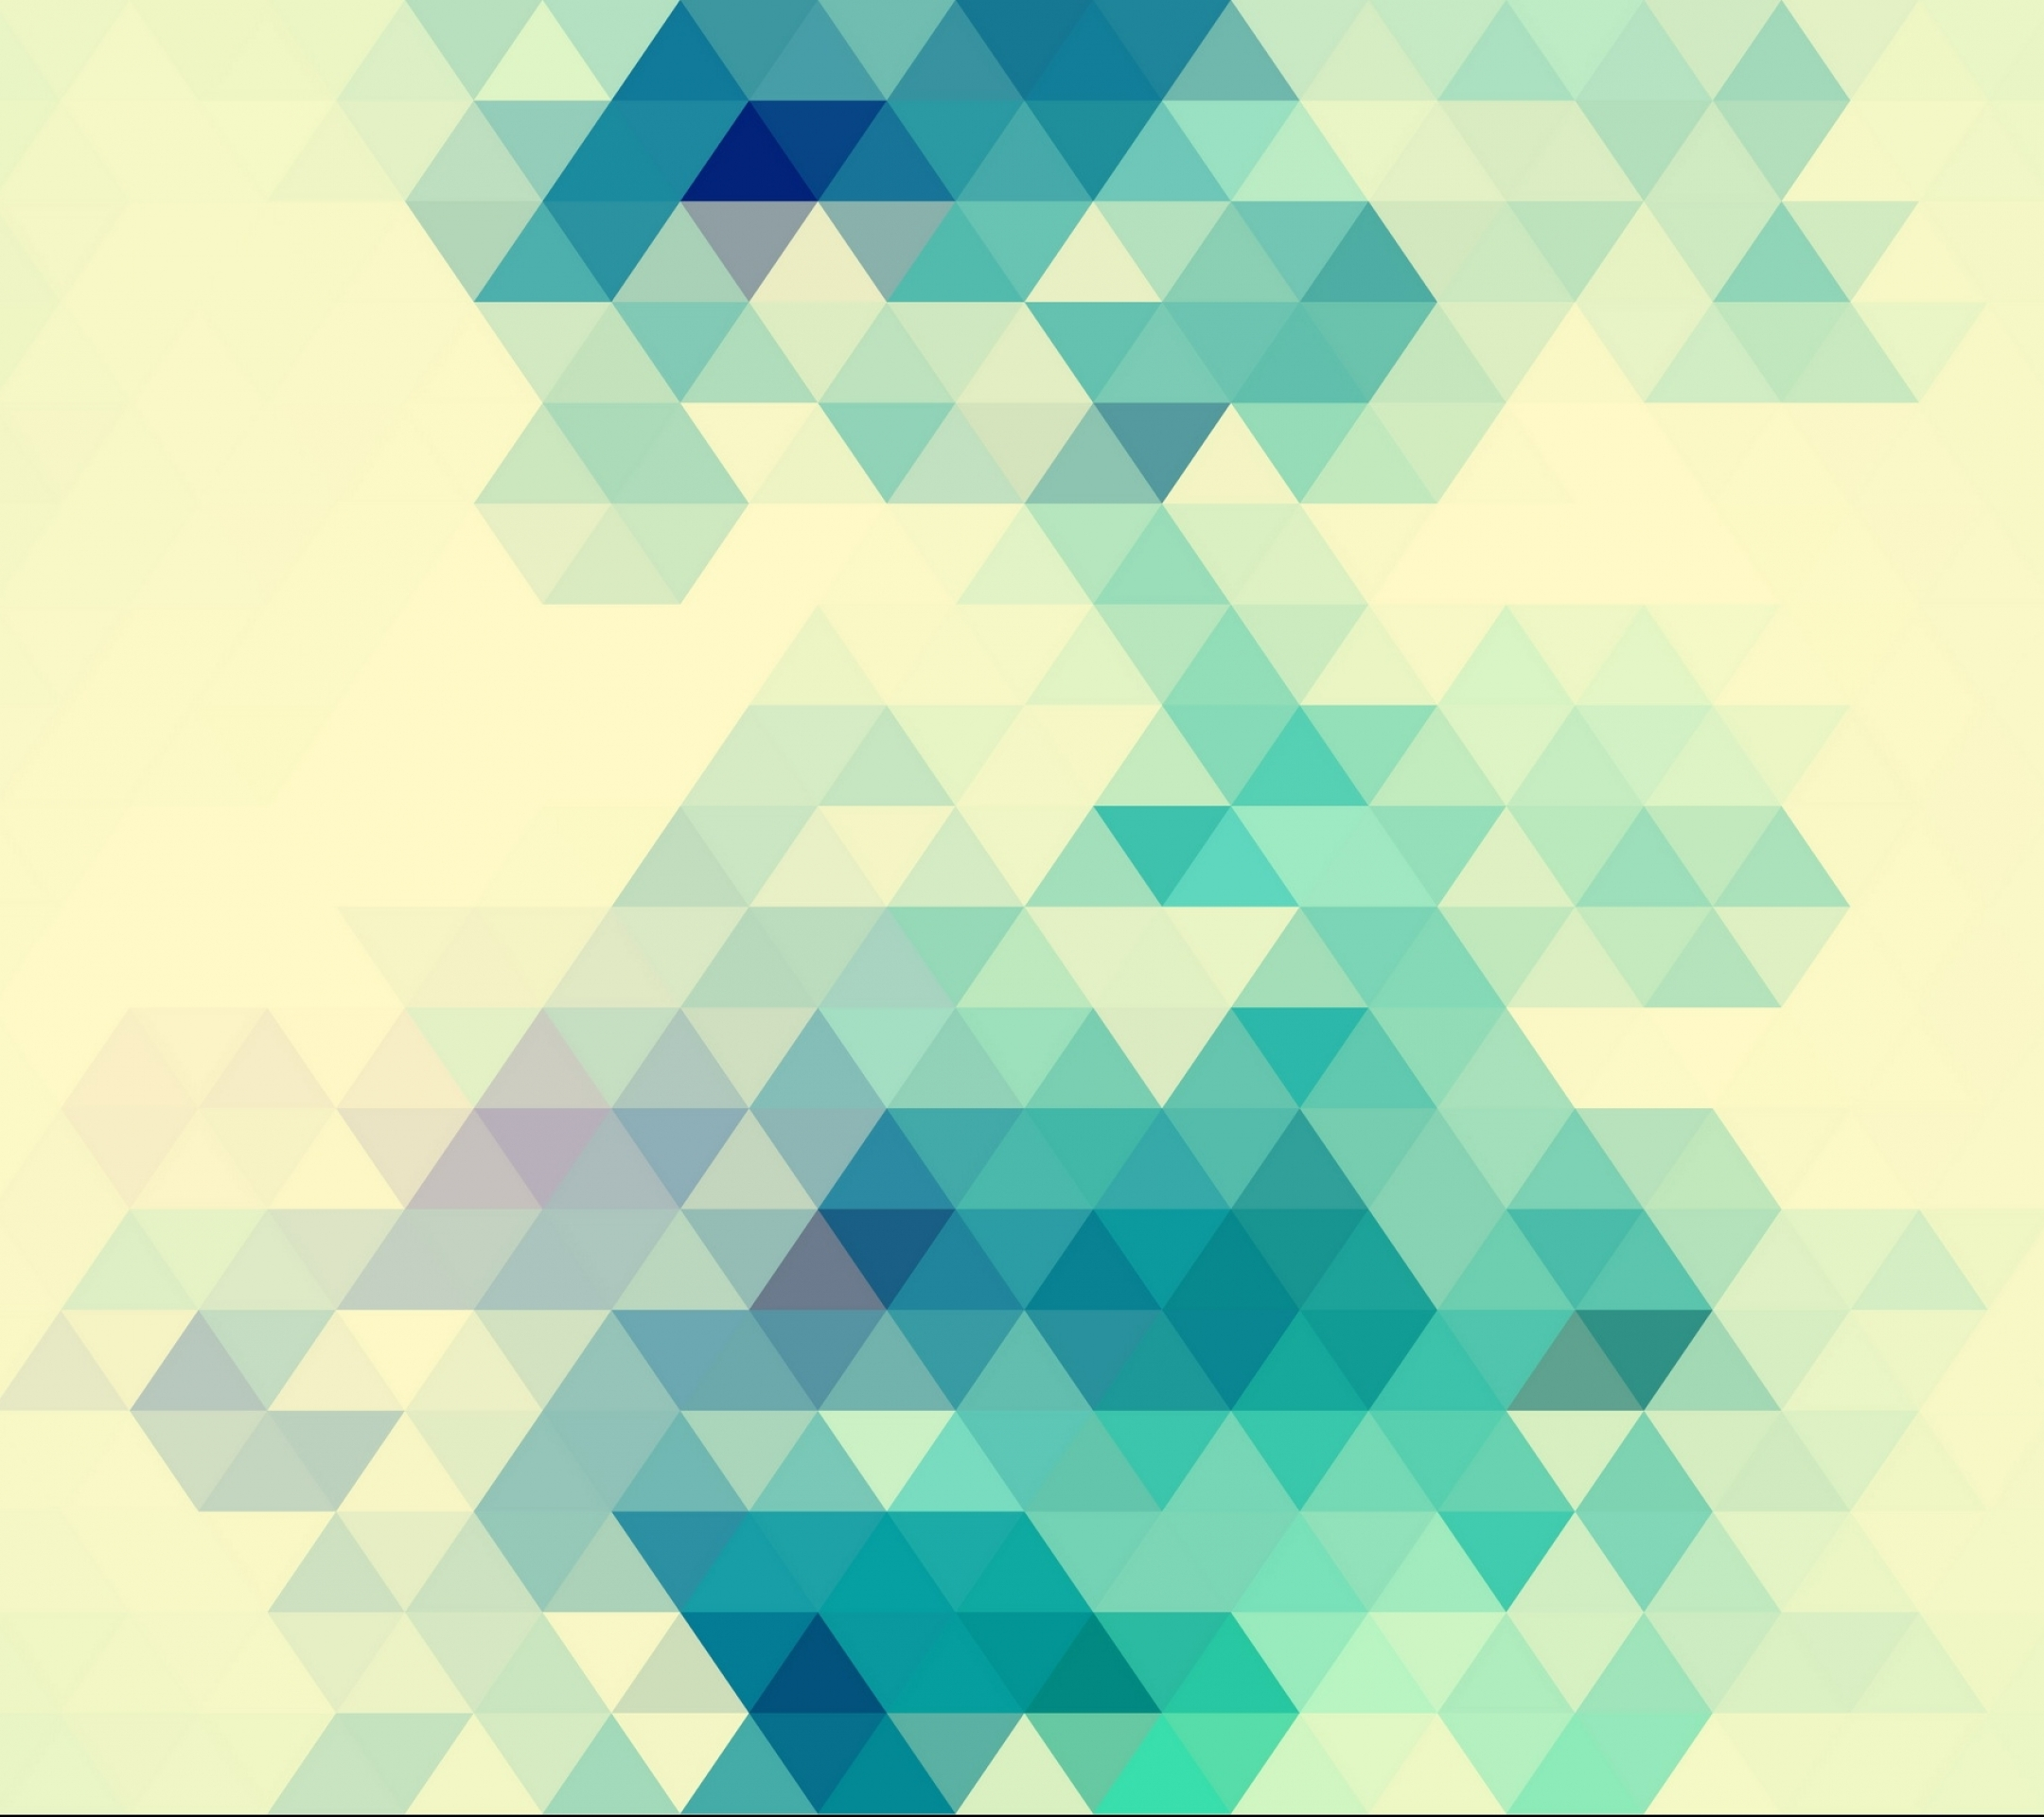 triangle design images - HD 2560×1600